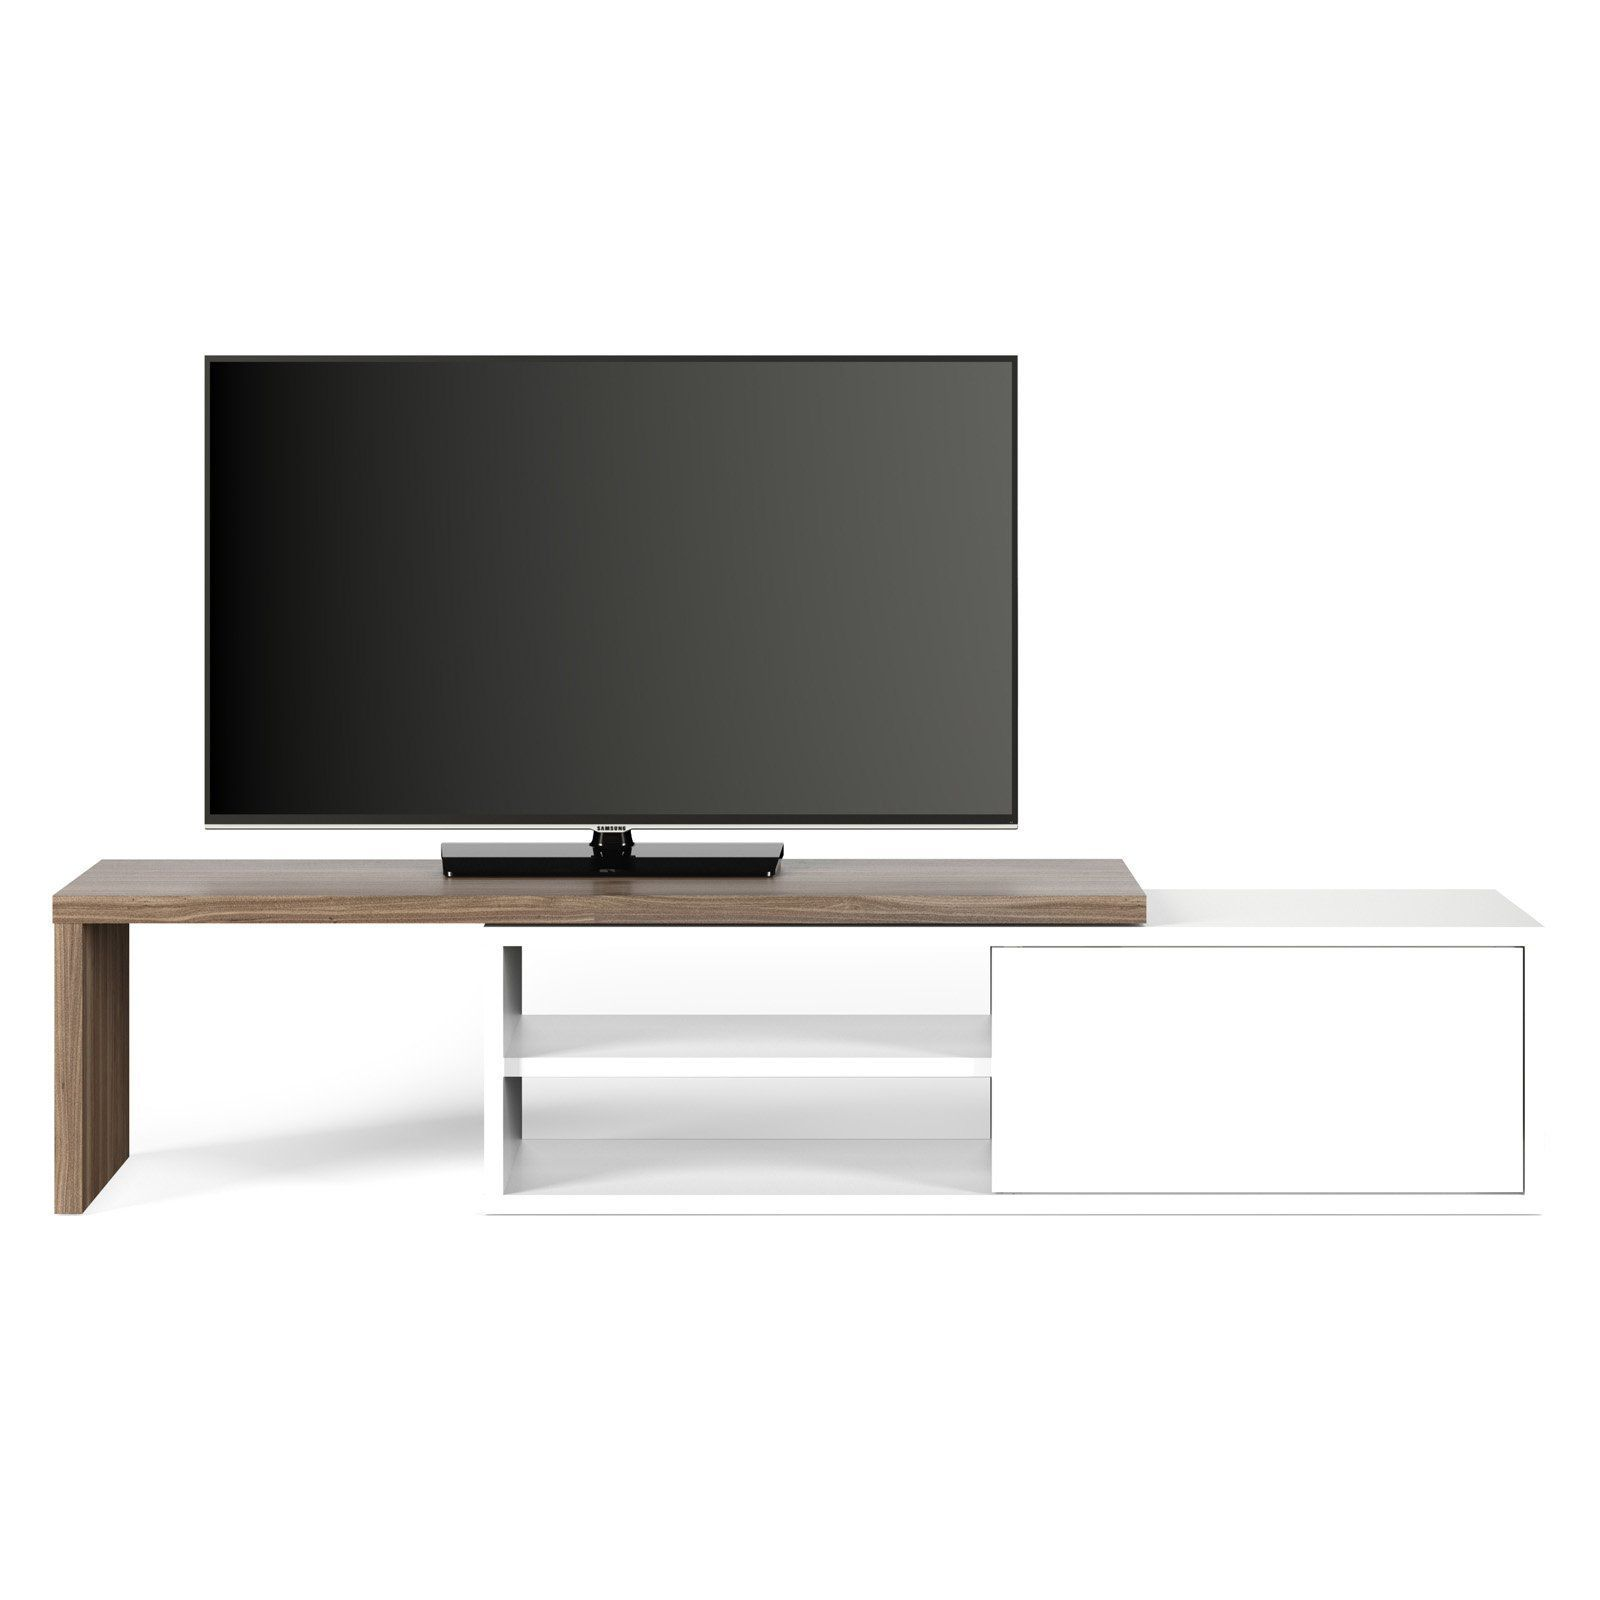 Tema Furniture Move 85 in. TV Stand - 9003.63918   Products ...